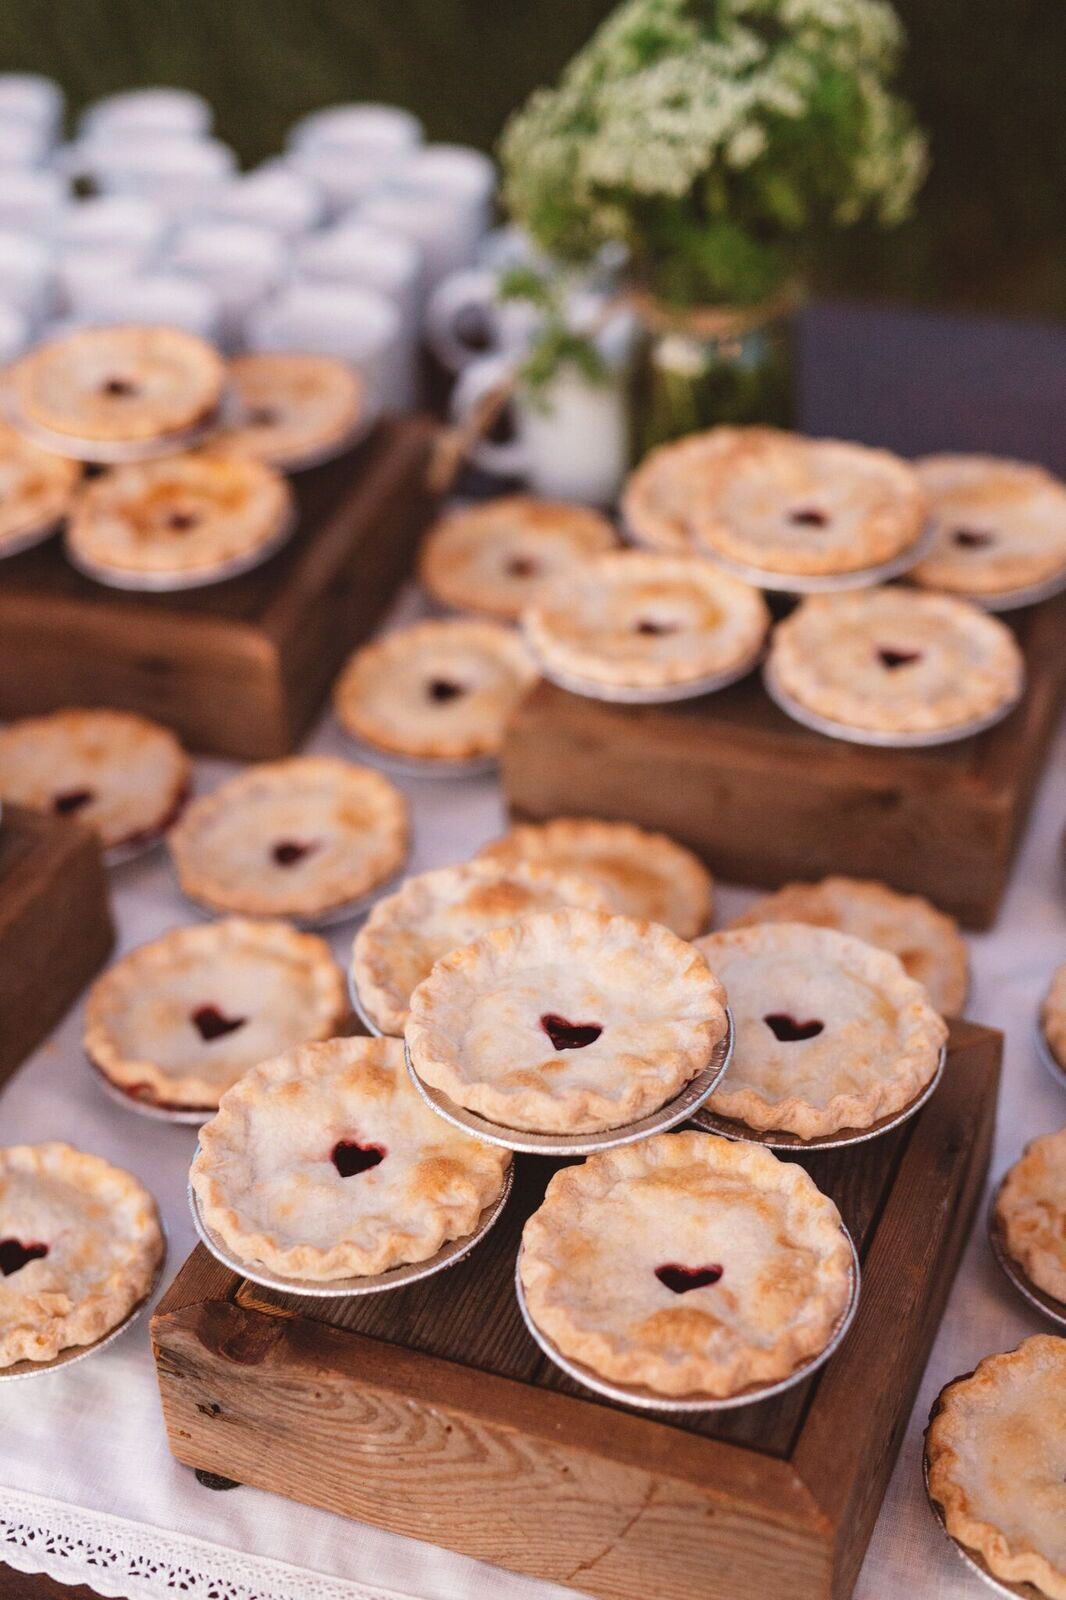 If you don t like cake, but still want wedding dessert - pies are the perfect wedding cake alternat